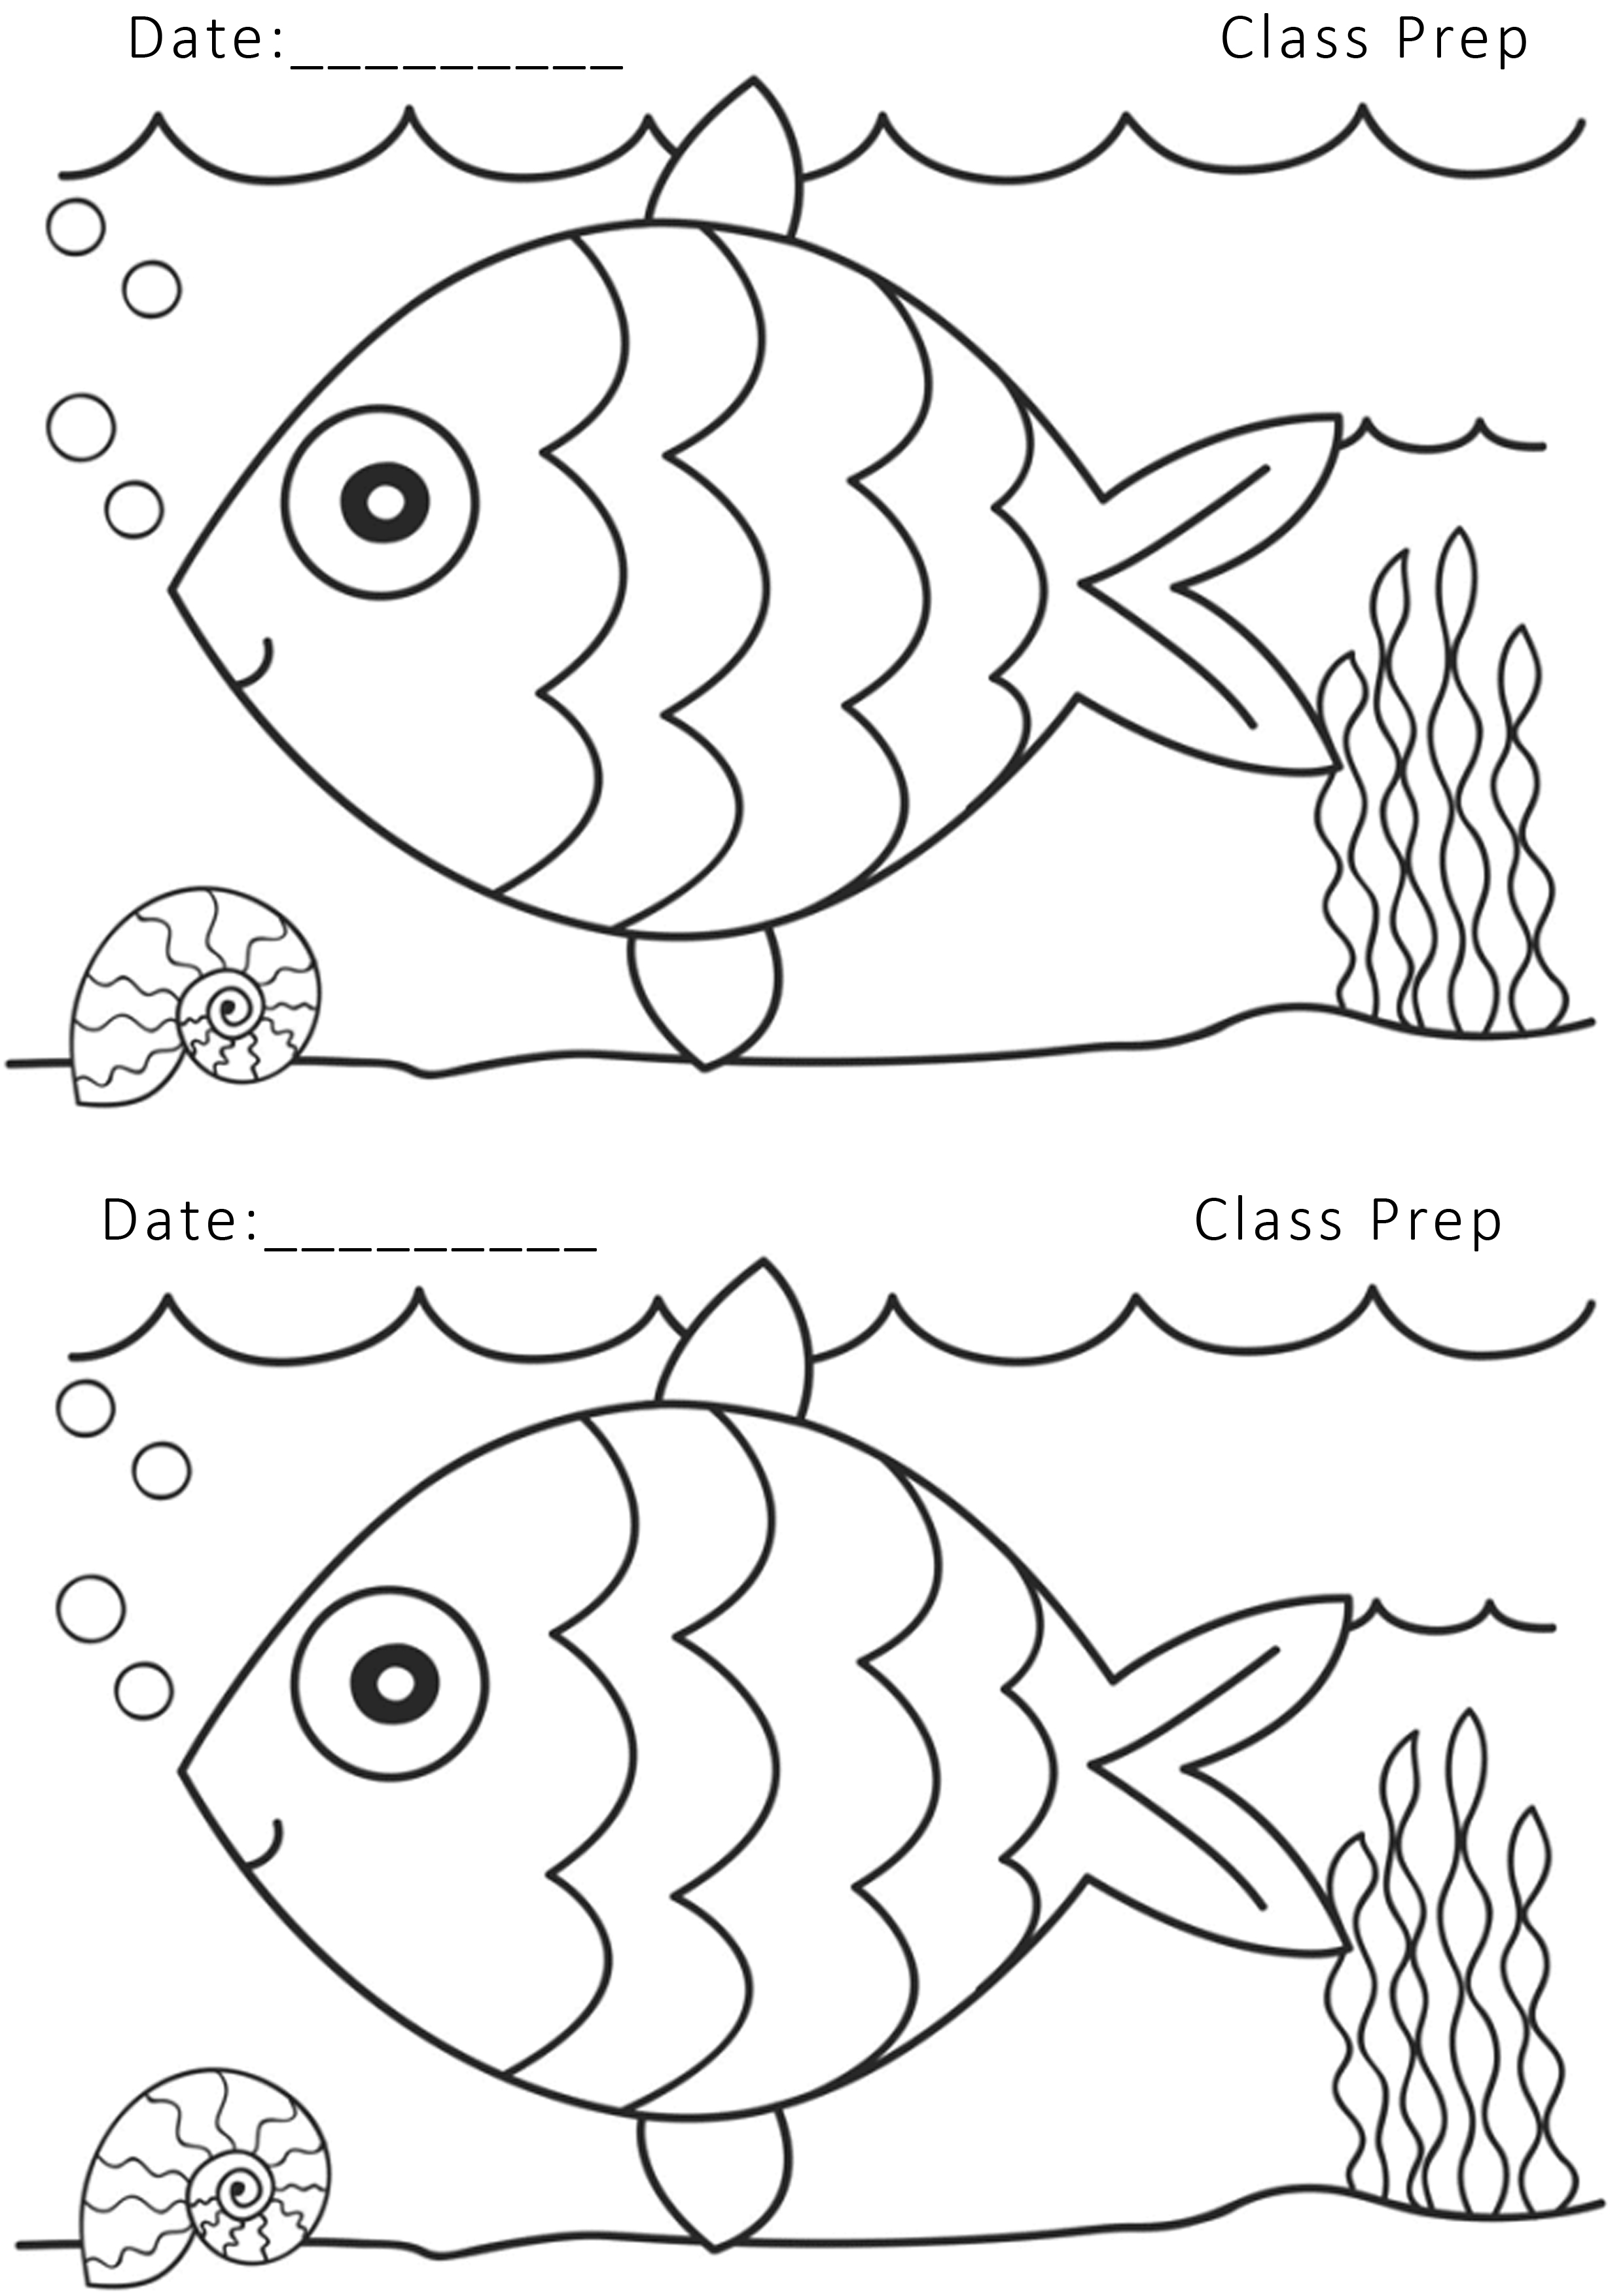 coloring kids drawing worksheet 7 best images of symmetrical drawing pages printable coloring drawing kids worksheet